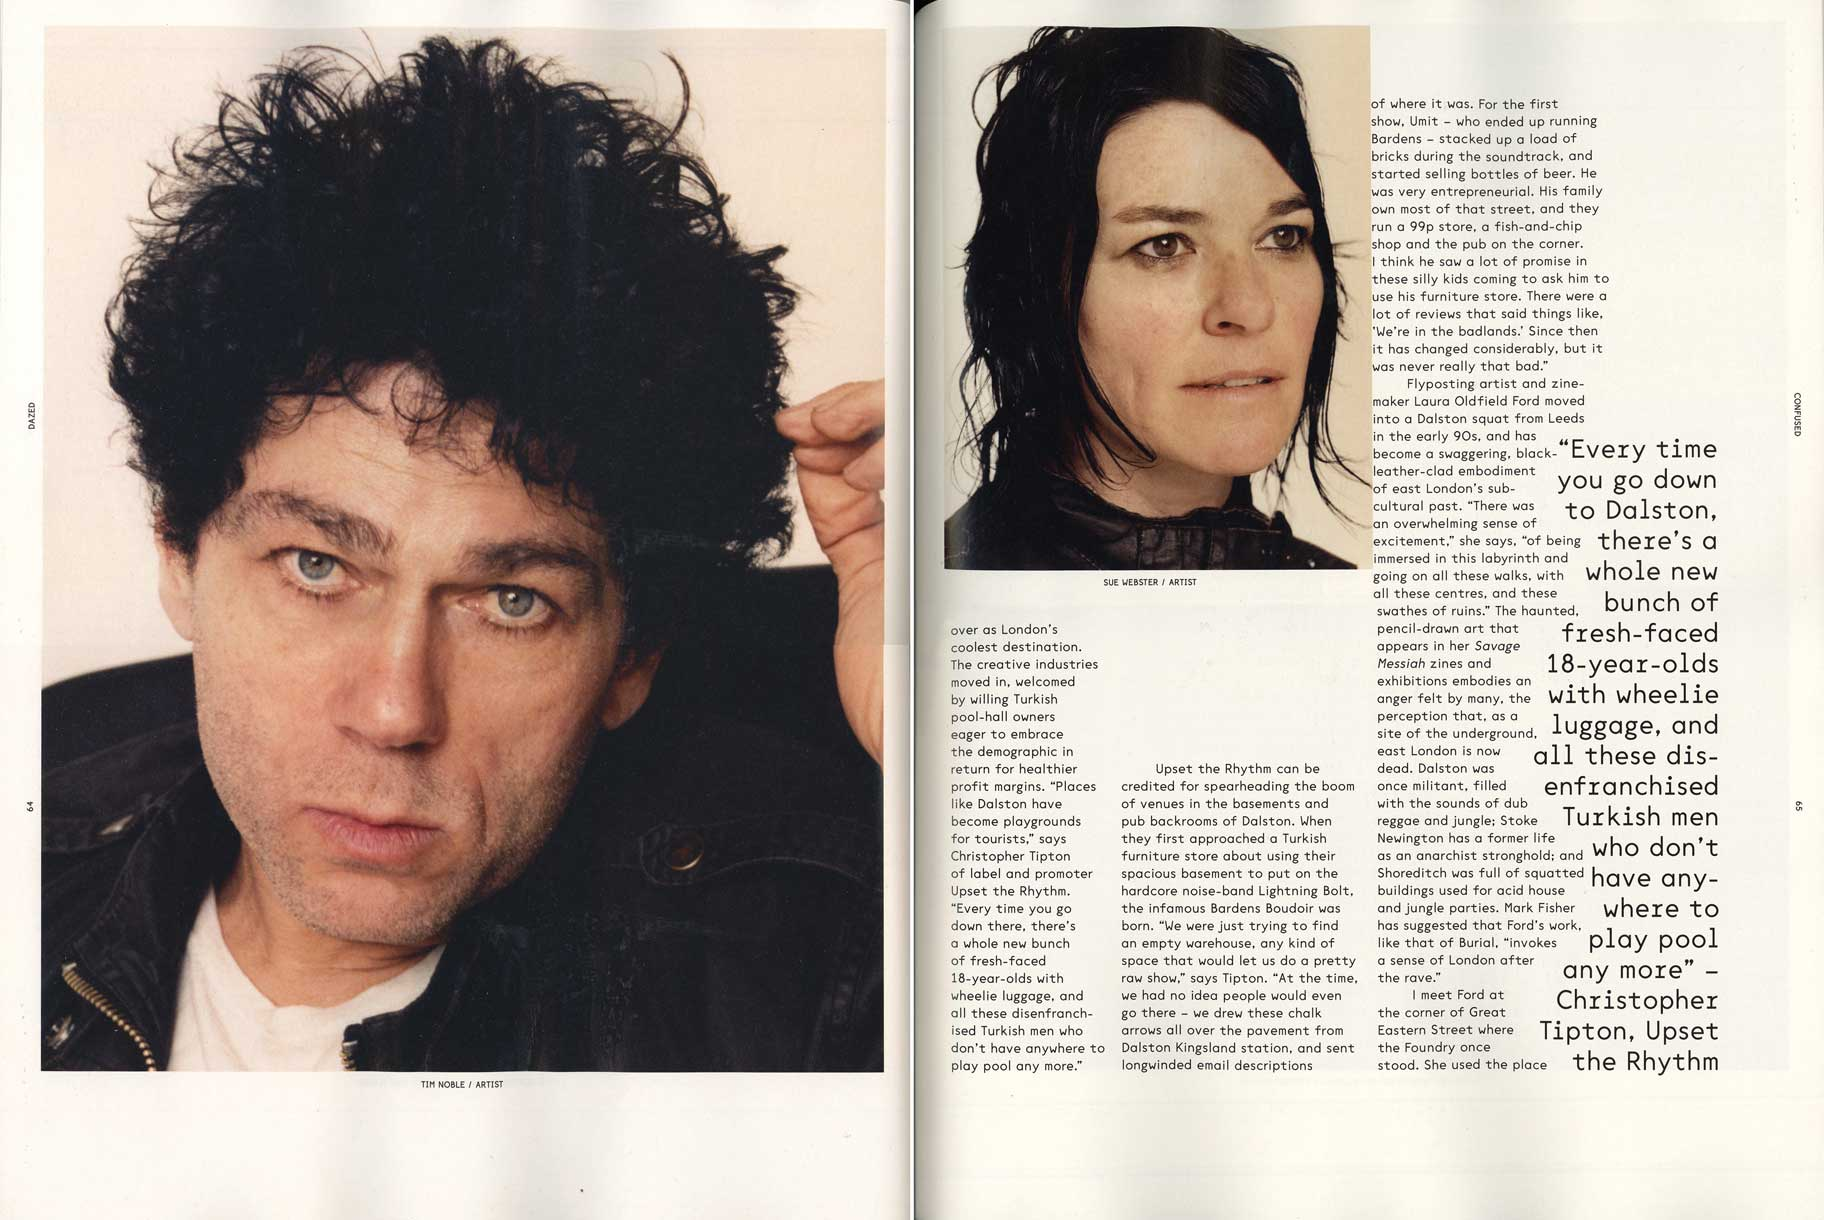 Dazed & Confused Magazine, May 2012 pgs 64-65